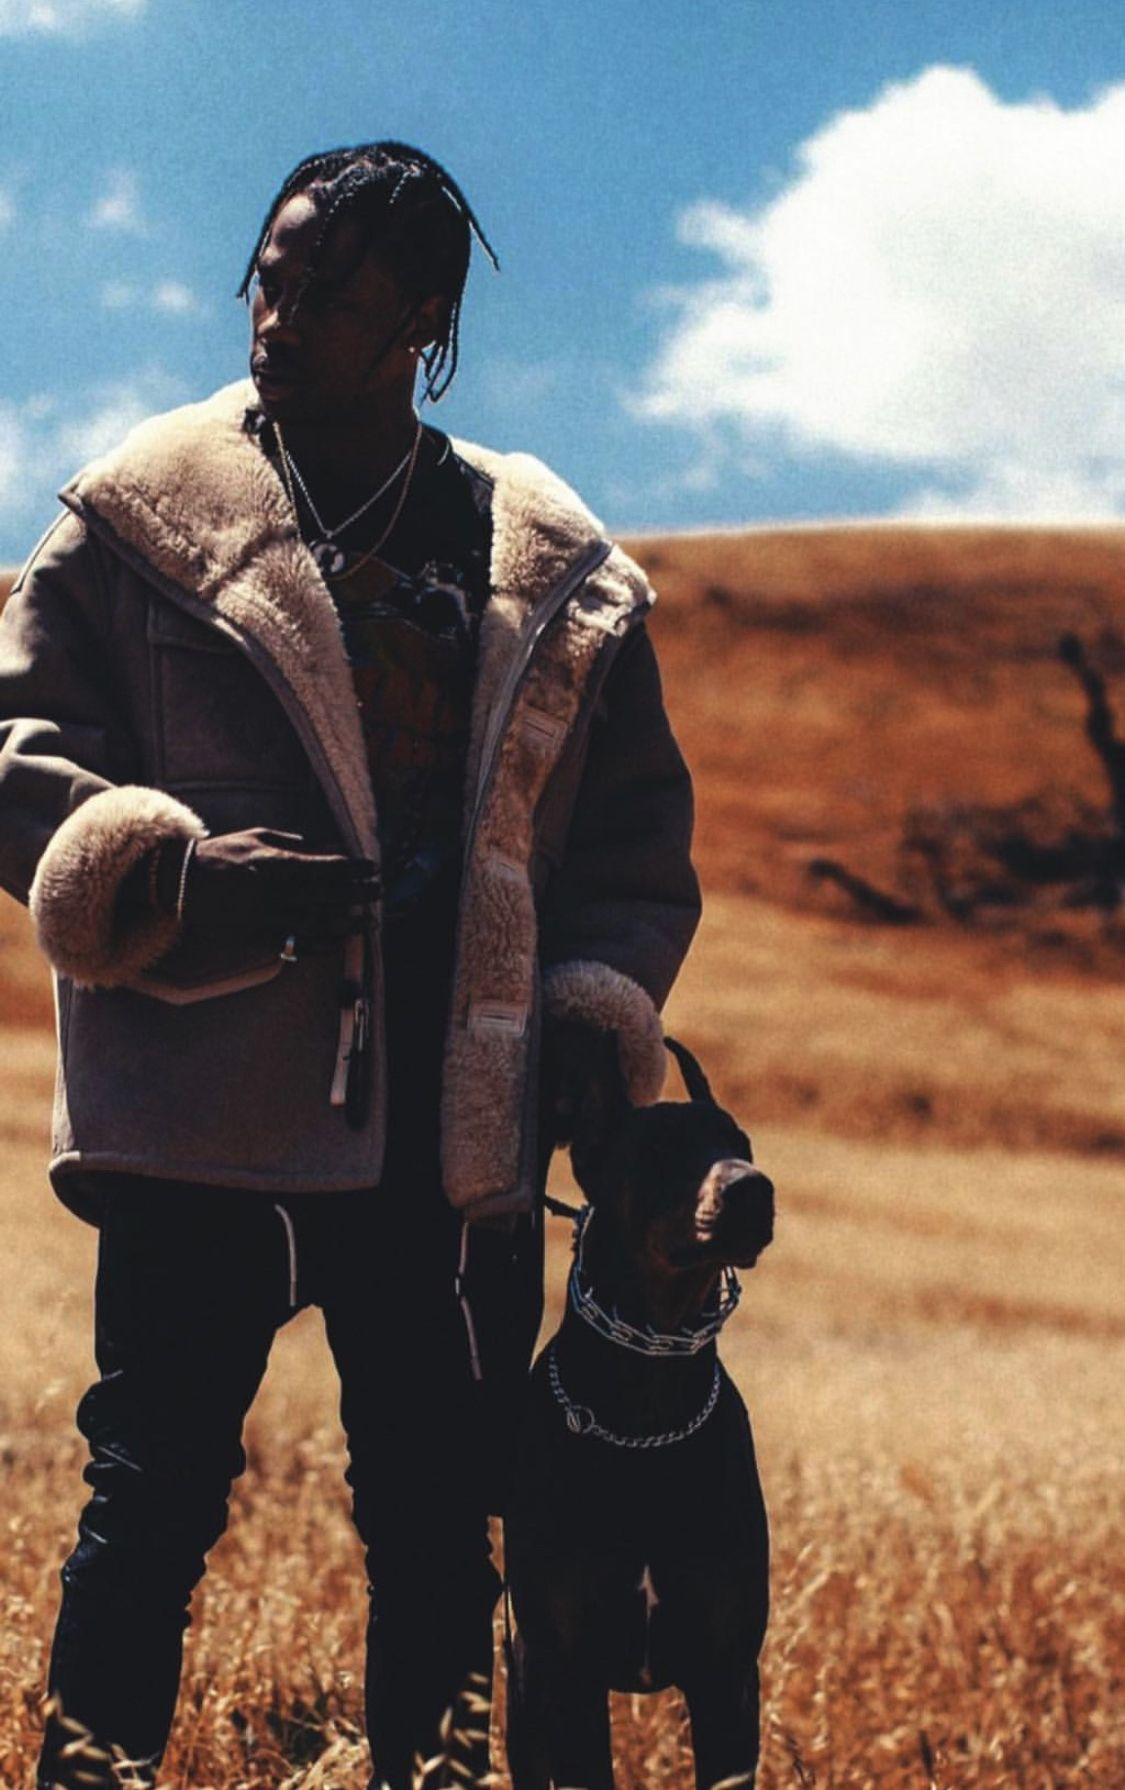 Pin by Keion Craig on flicks Travis scott wallpapers